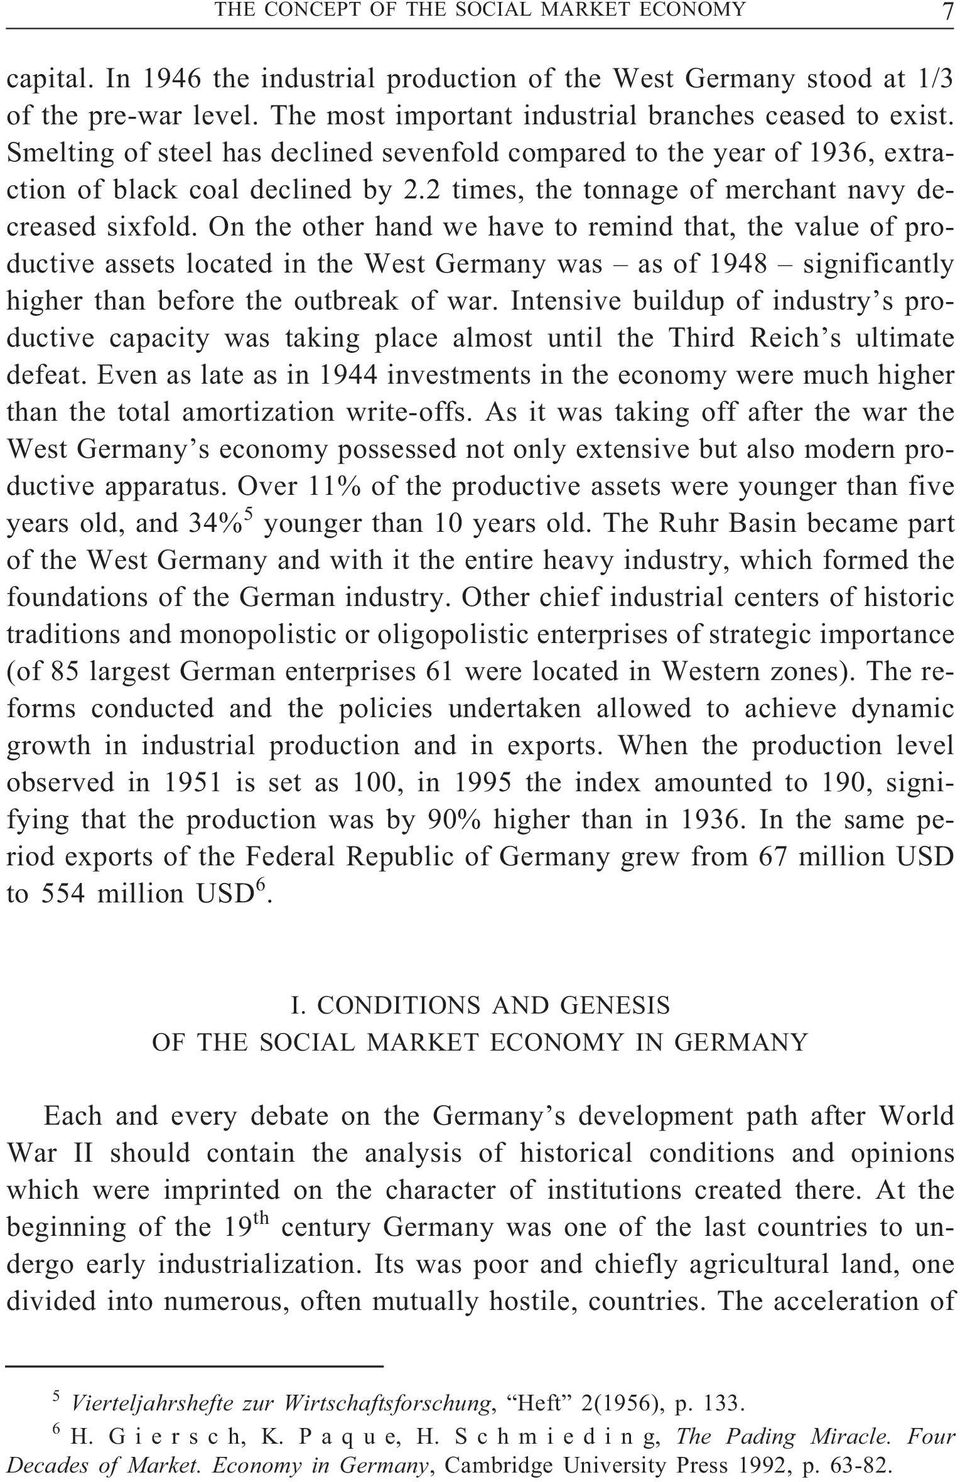 On the other hand we have to remind that, the value of productive assets located in the West Germany was as of 1948 significantly higher than before the outbreak of war.